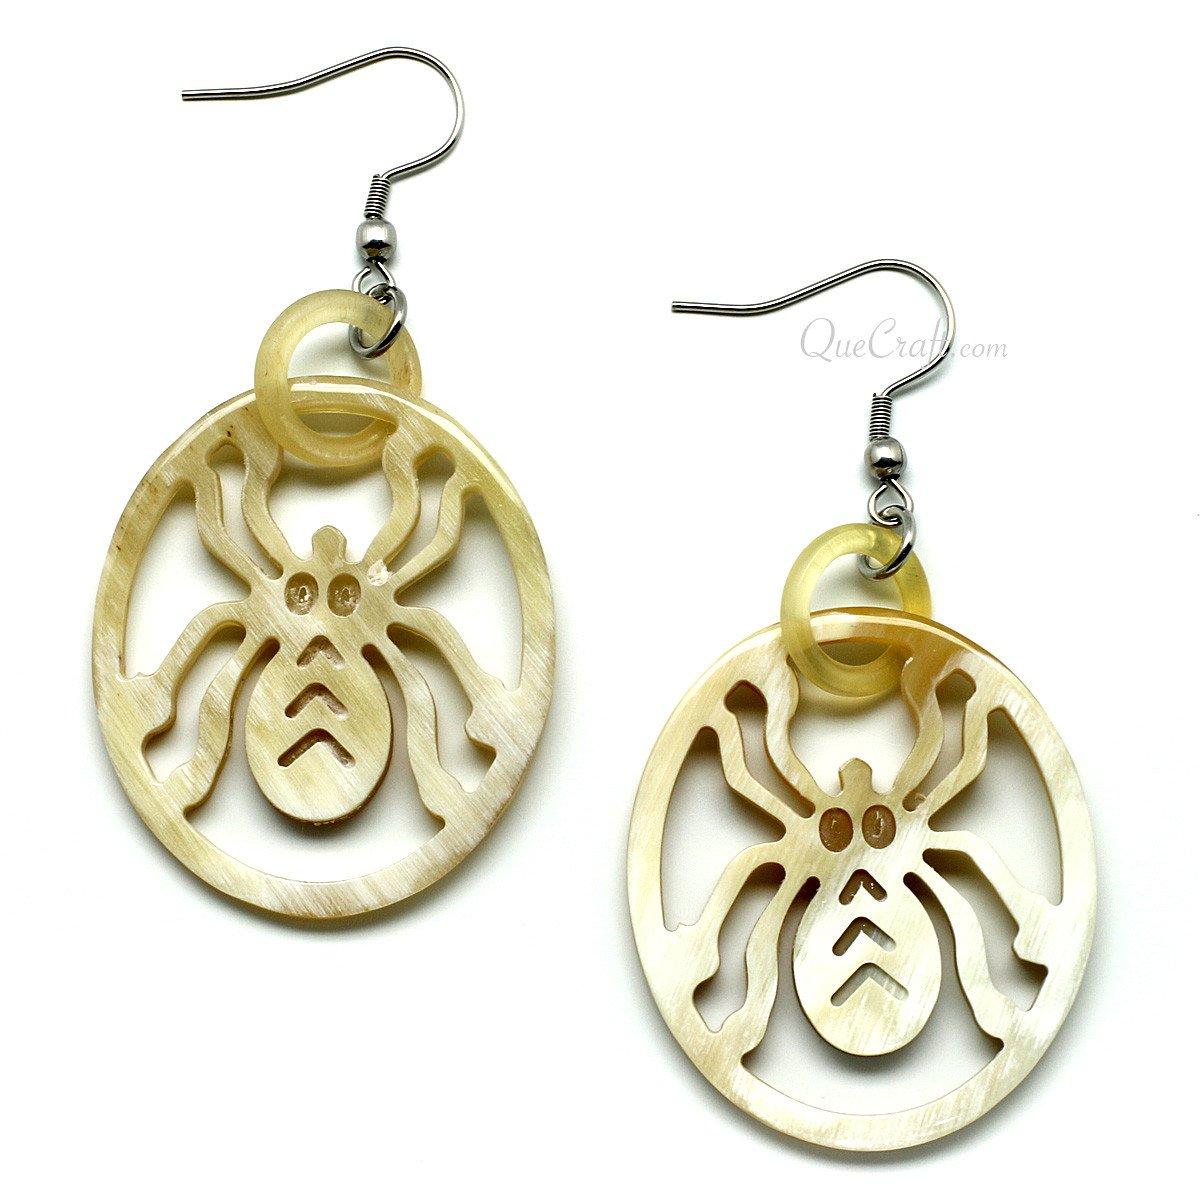 Horn Earrings #11624 - HORN.JEWELRY by QueCraft